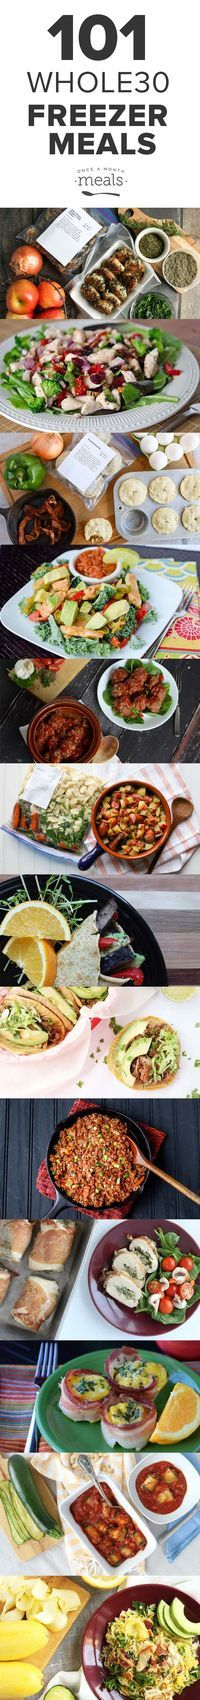 We have compiled 101 Whole30 compliant recipes from which to choose, making it simple for you to get started, keep going, or finish up – wherever you are on the journey.